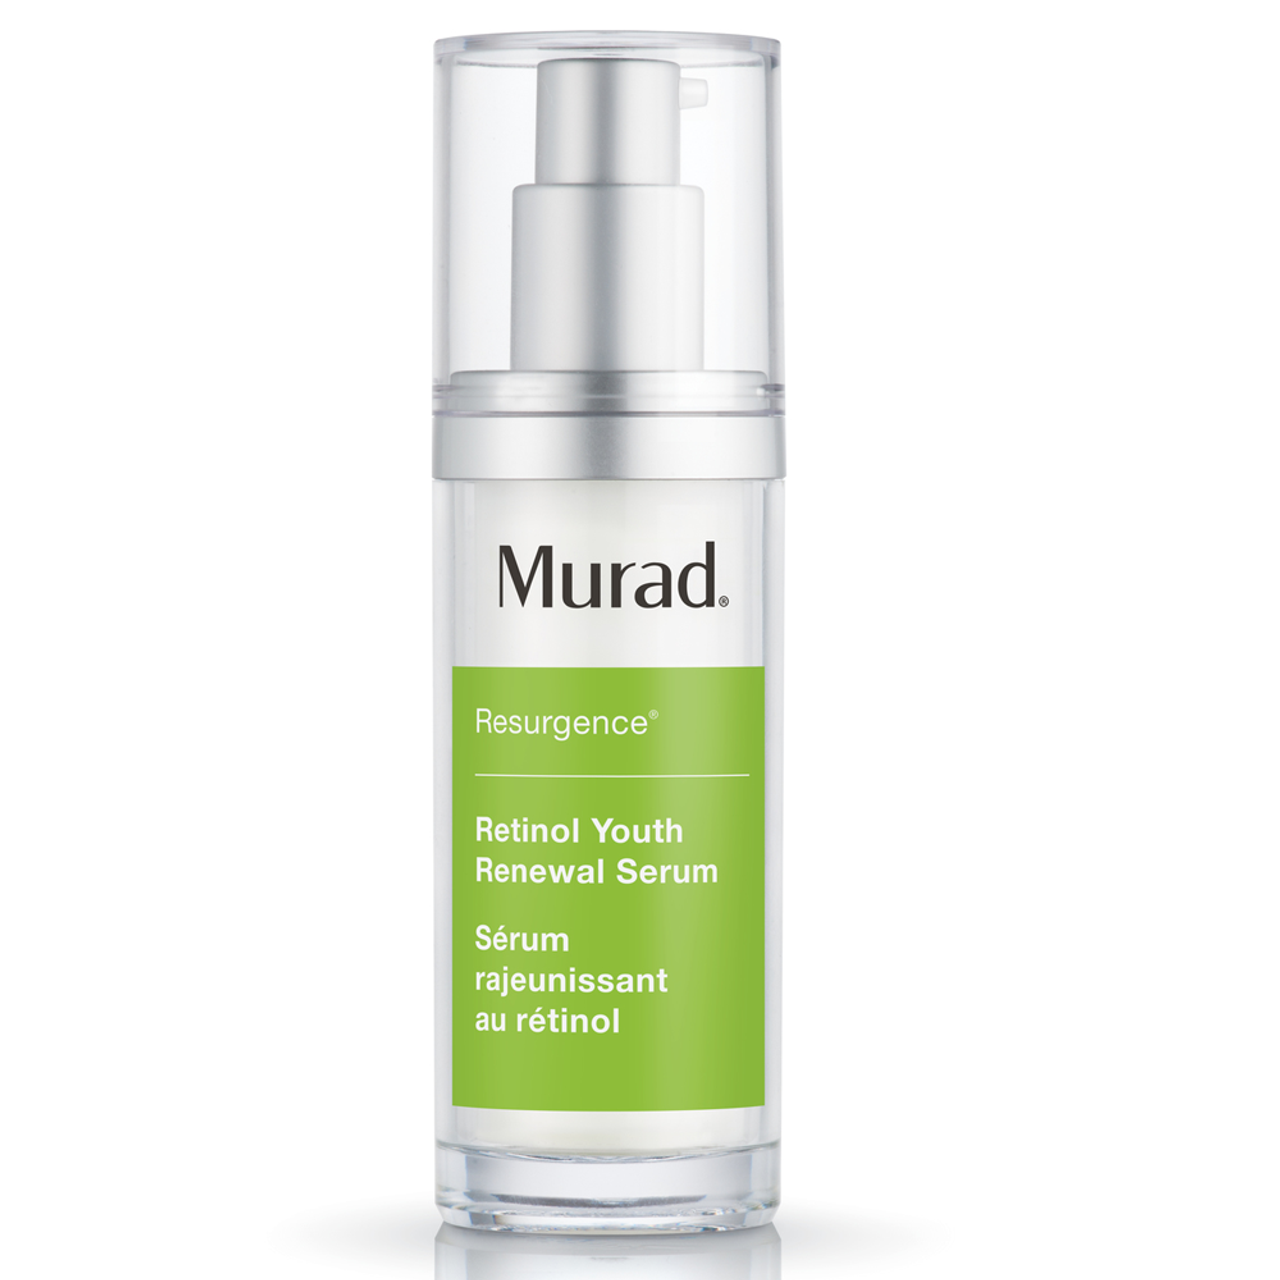 Murad Resurgence™ Retinol Youth Renewal Serum